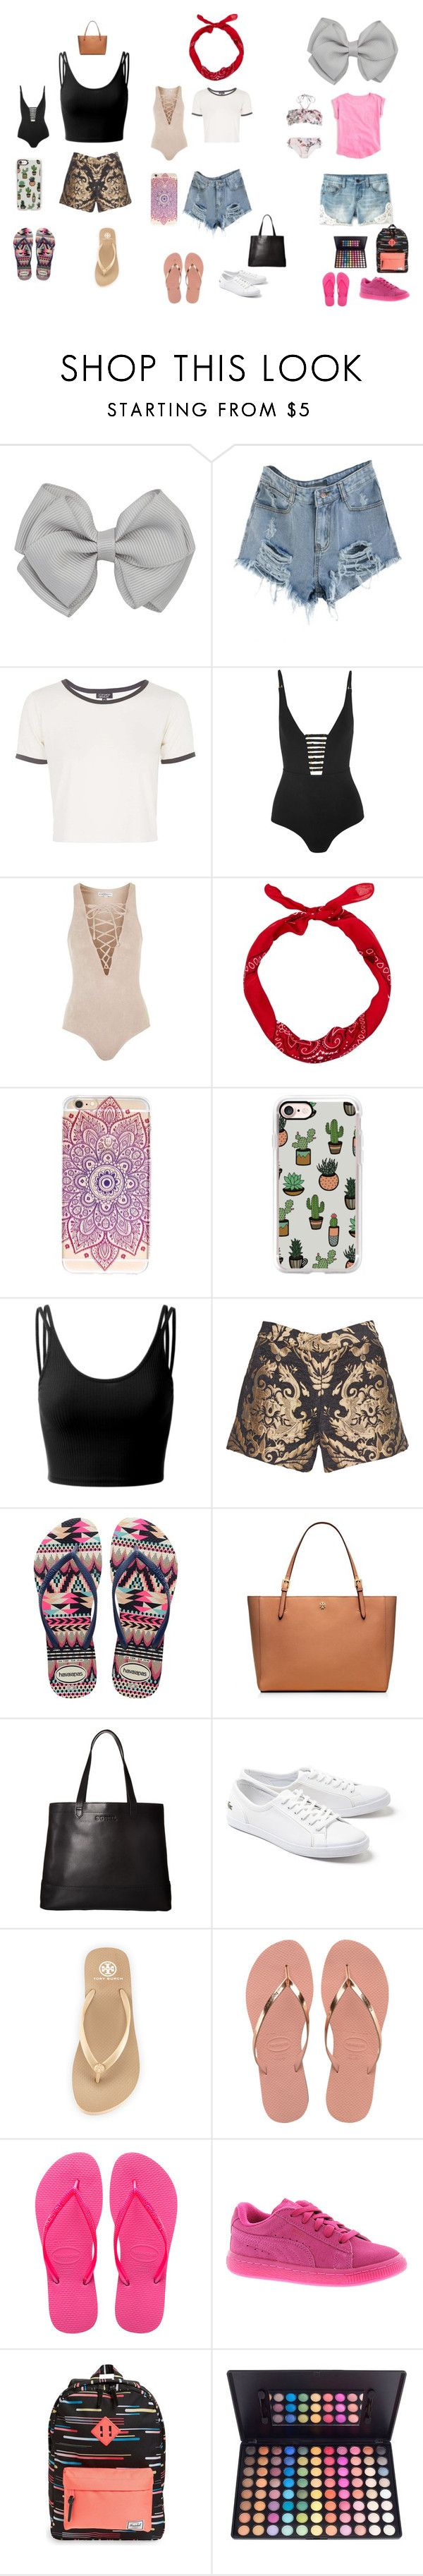 """""""Mum ,Forest,Harper"""" by evefarrah ❤ liked on Polyvore featuring J.Crew, Topshop, Zimmermann, Casetify, Doublju, Alice + Olivia, Havaianas, Tory Burch, SOREL and Lacoste"""